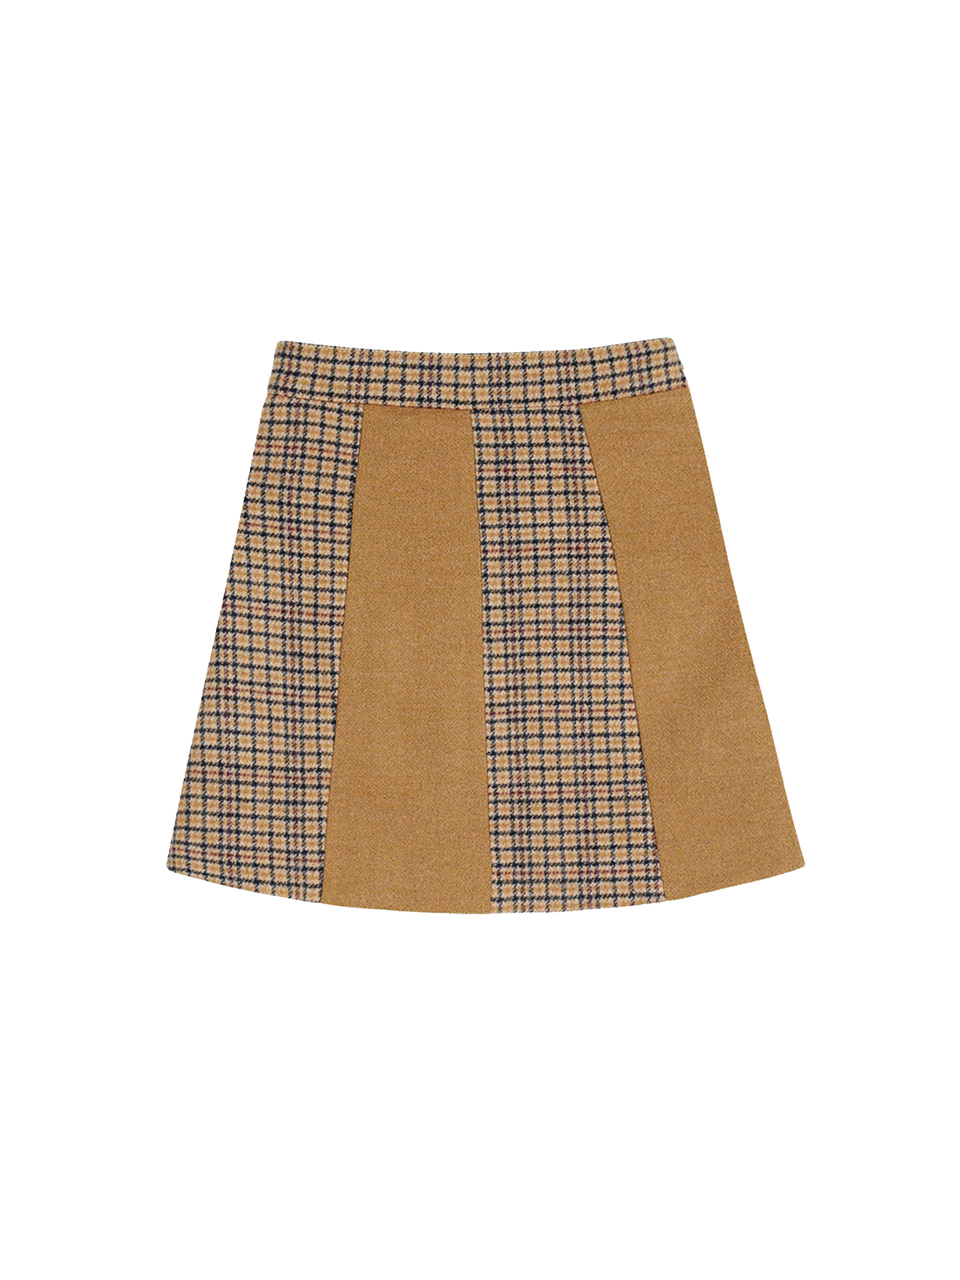 mgmg wool check skirt_brown